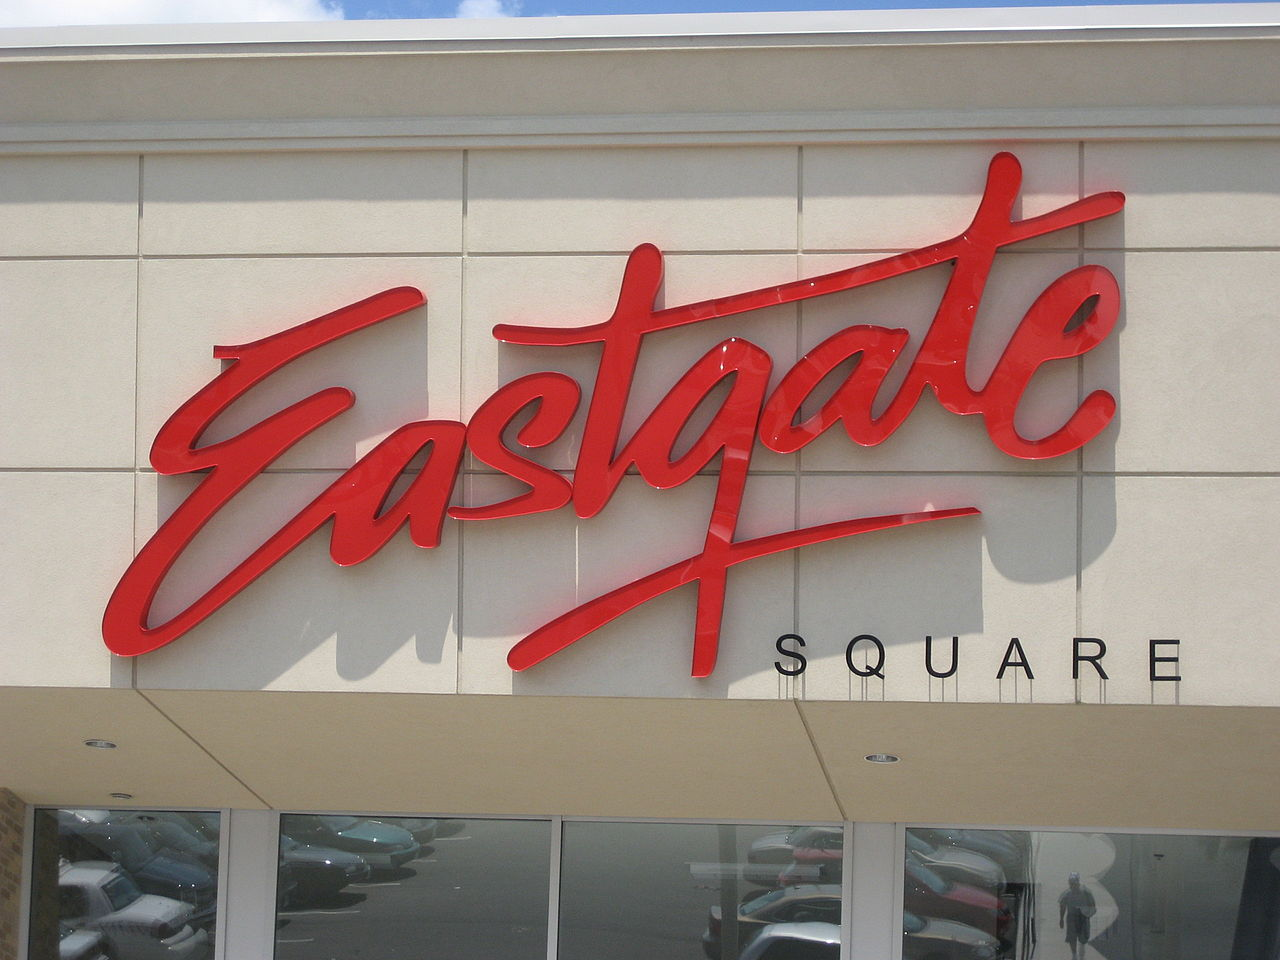 Eastgate Square sign